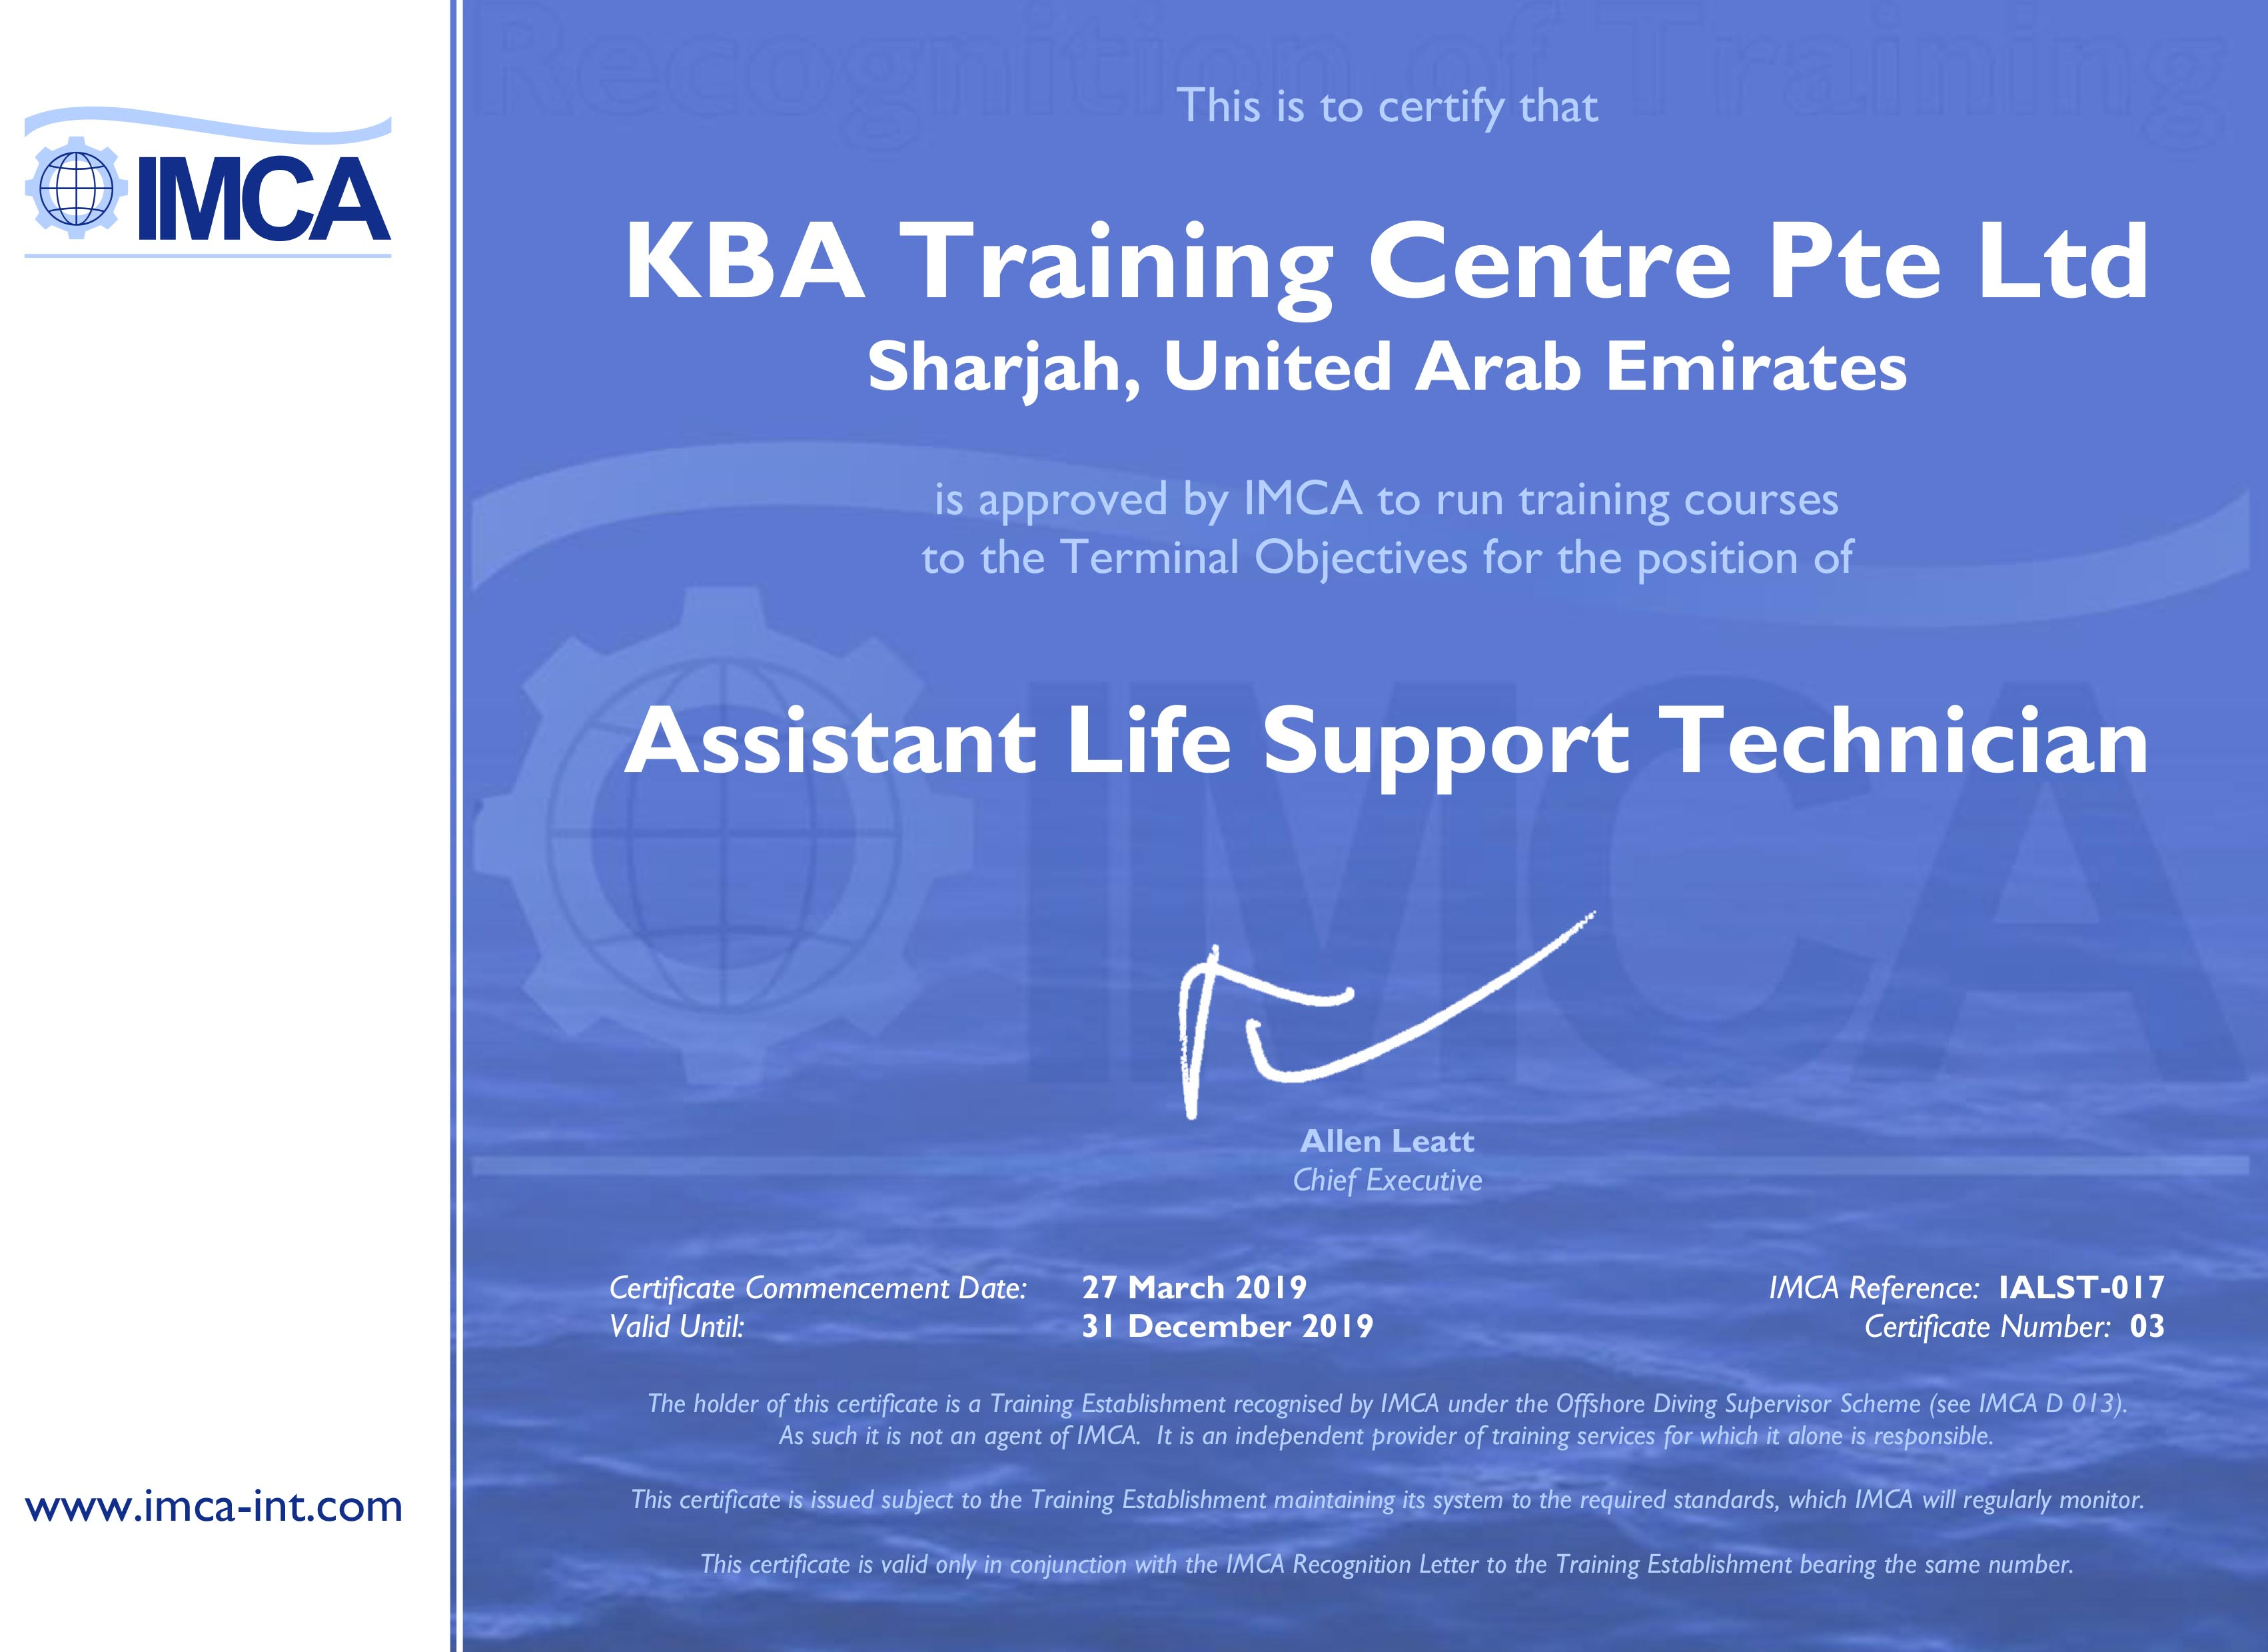 IMCA Assistant Life Support Technician - UAE Certification